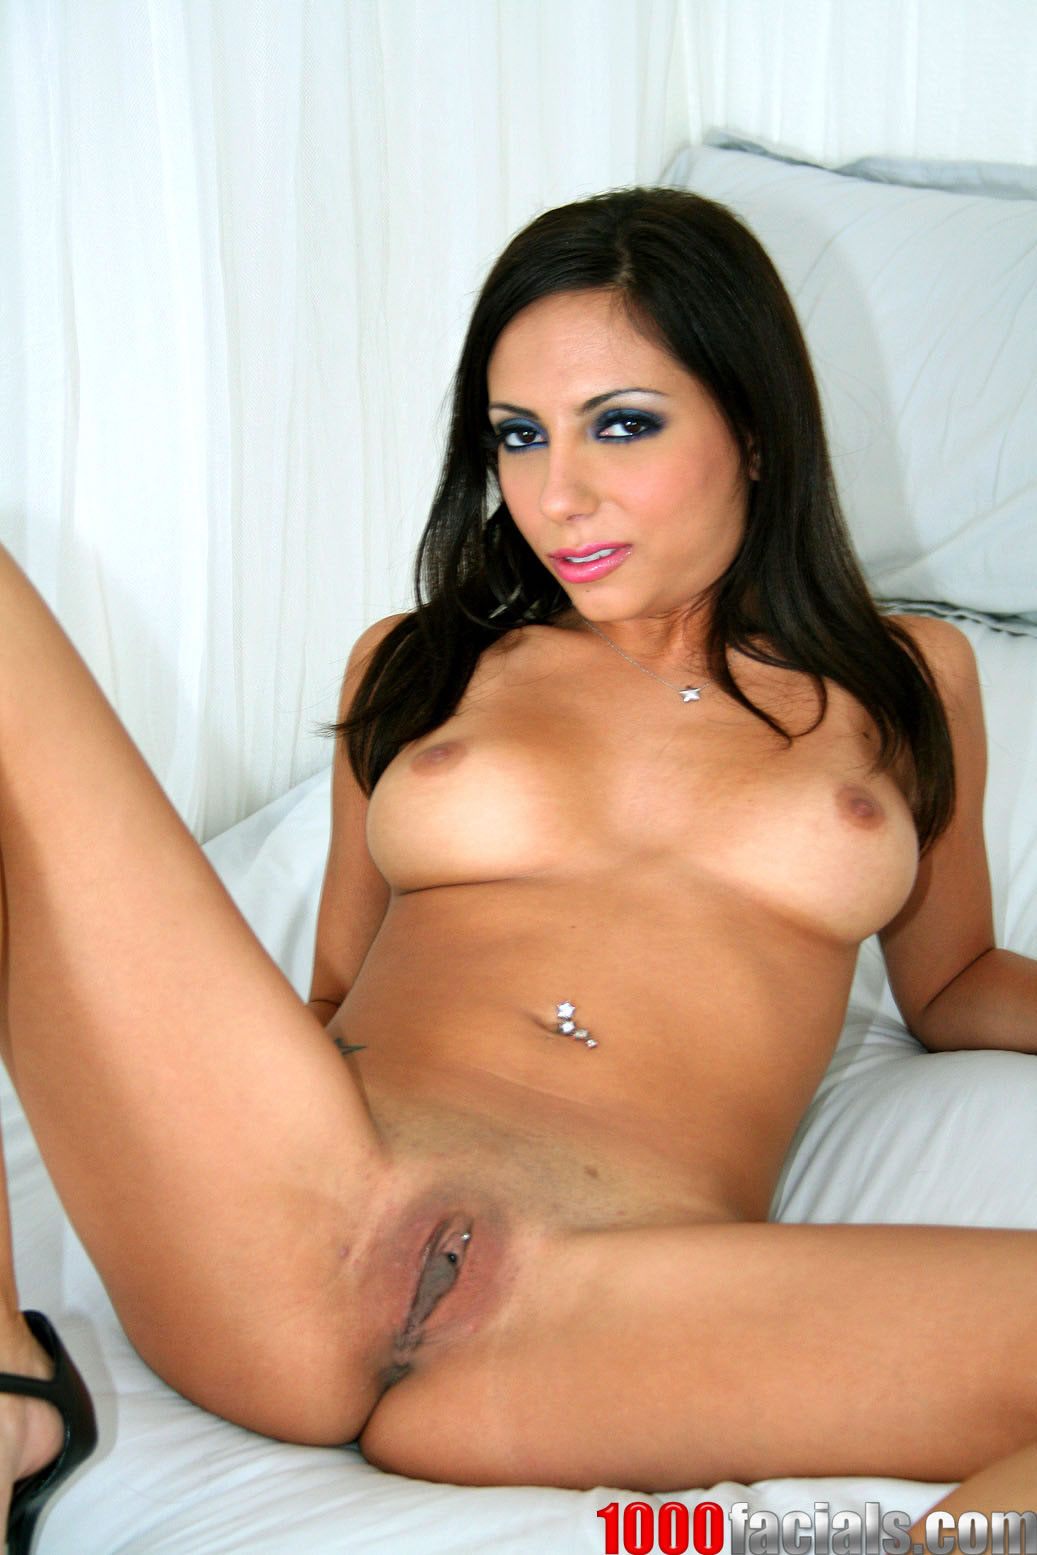 Aletta ocean riding a big dick anally 9